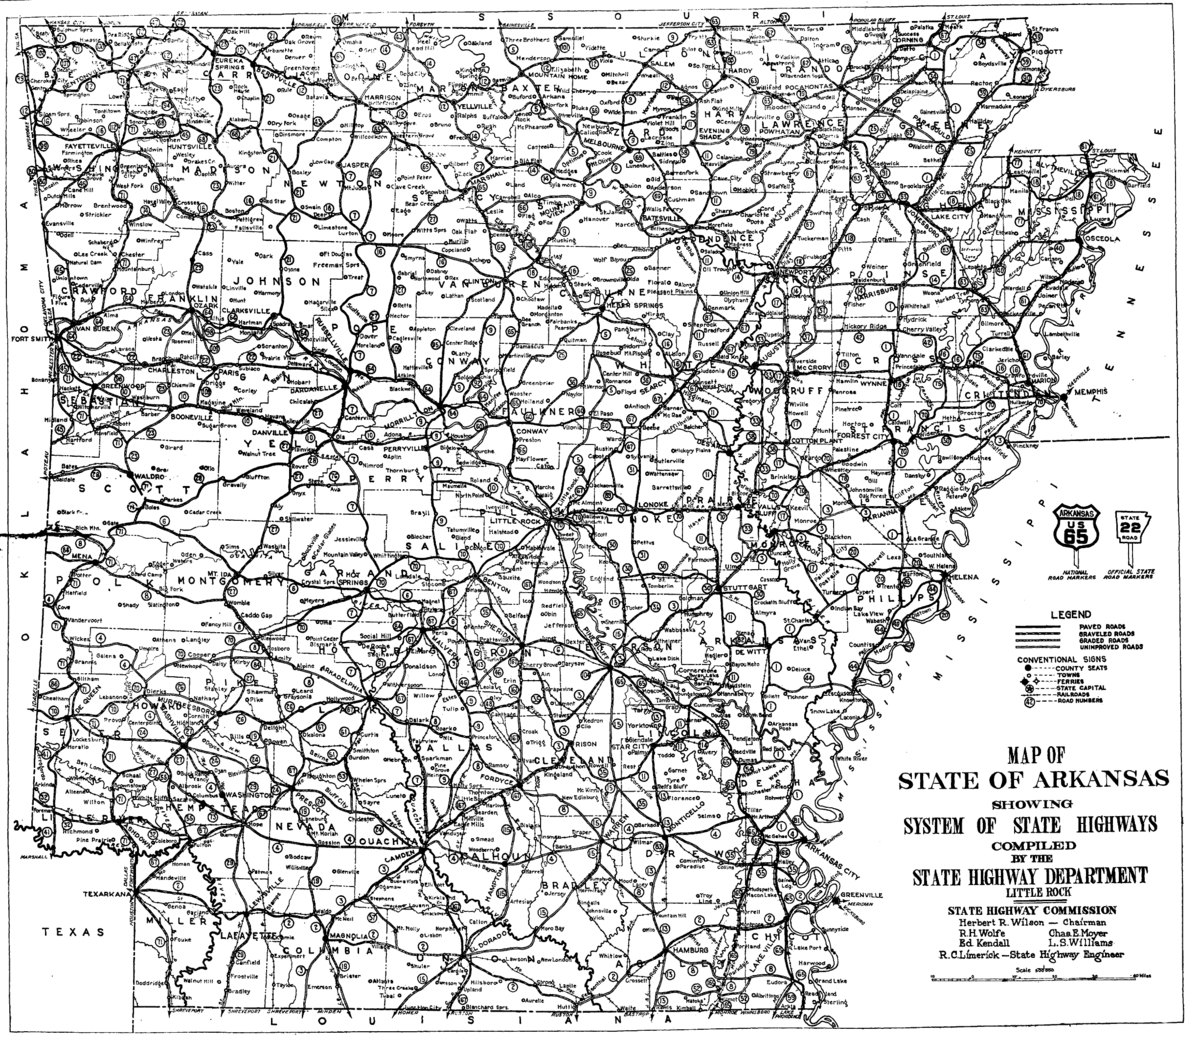 1926 Arkansas State Highway Numbering - Wikipedia - Arkansas Road Map Printable